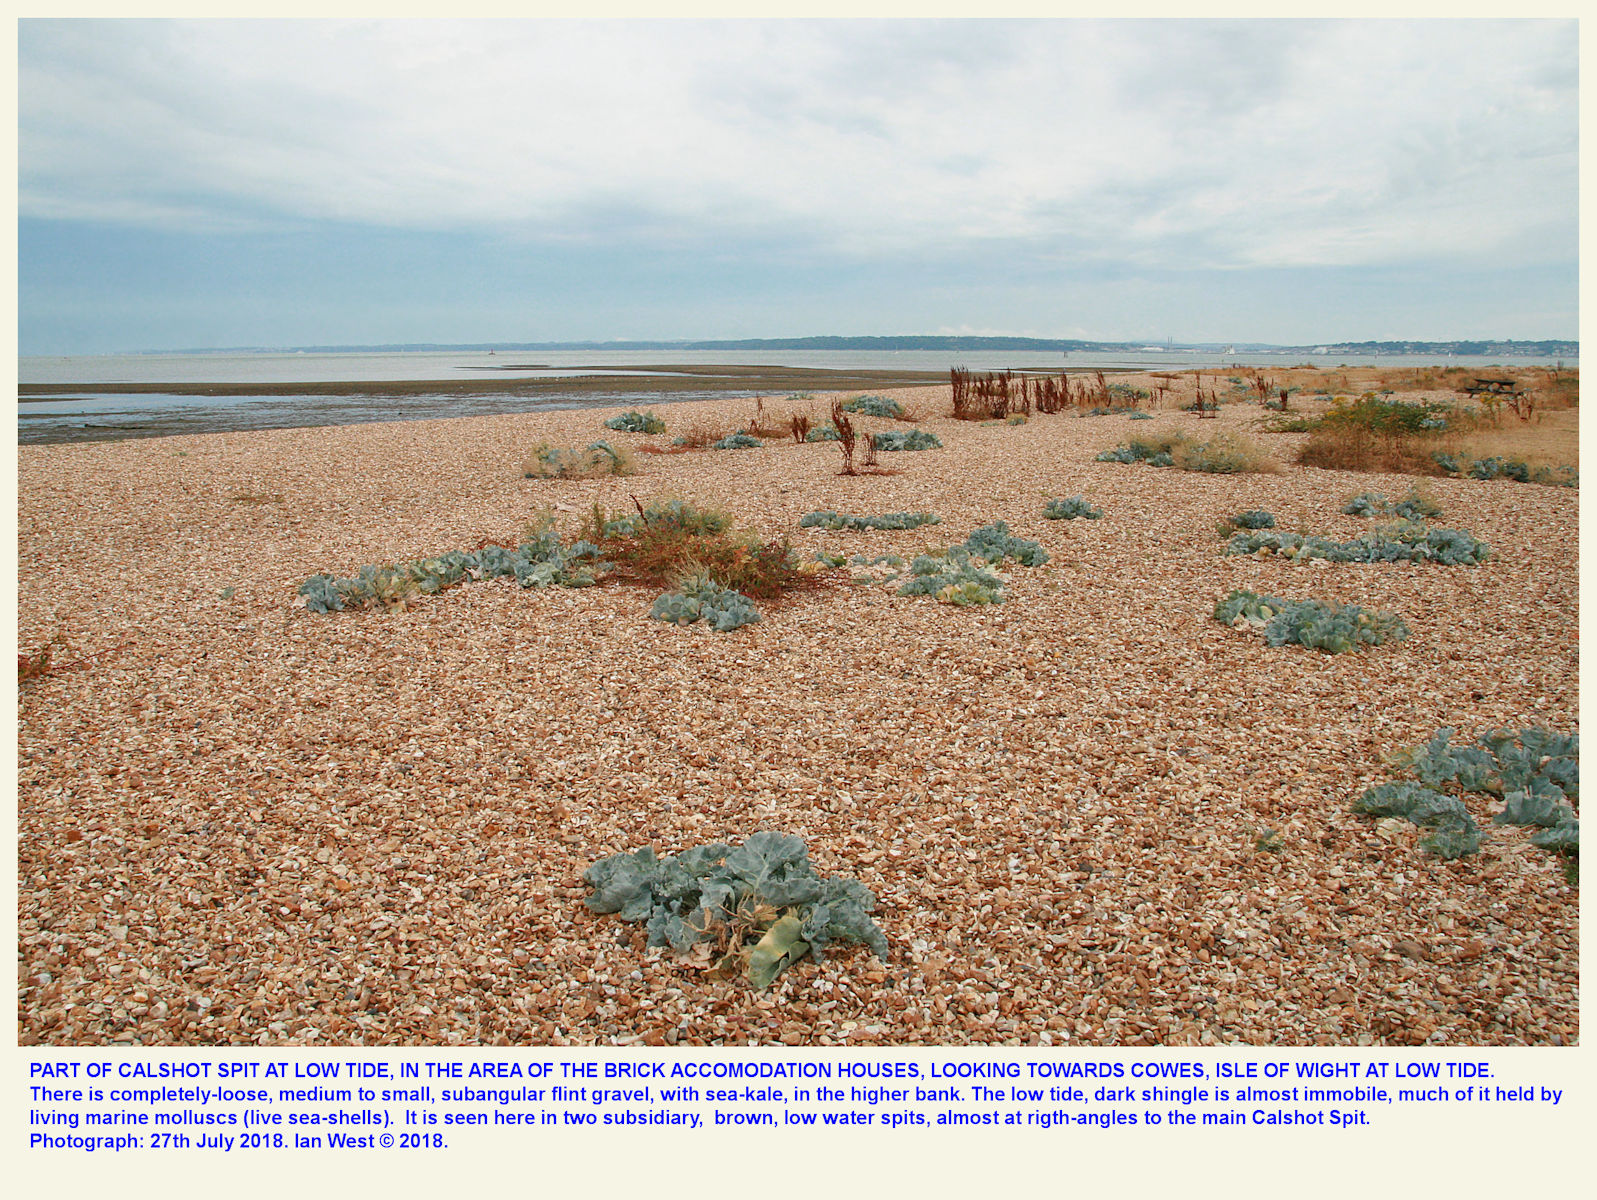 The main shingle beach, with sea-kale, and a view of low-tide, subsidiary spits, near the middle of Calshot Spit, 27th June 2018